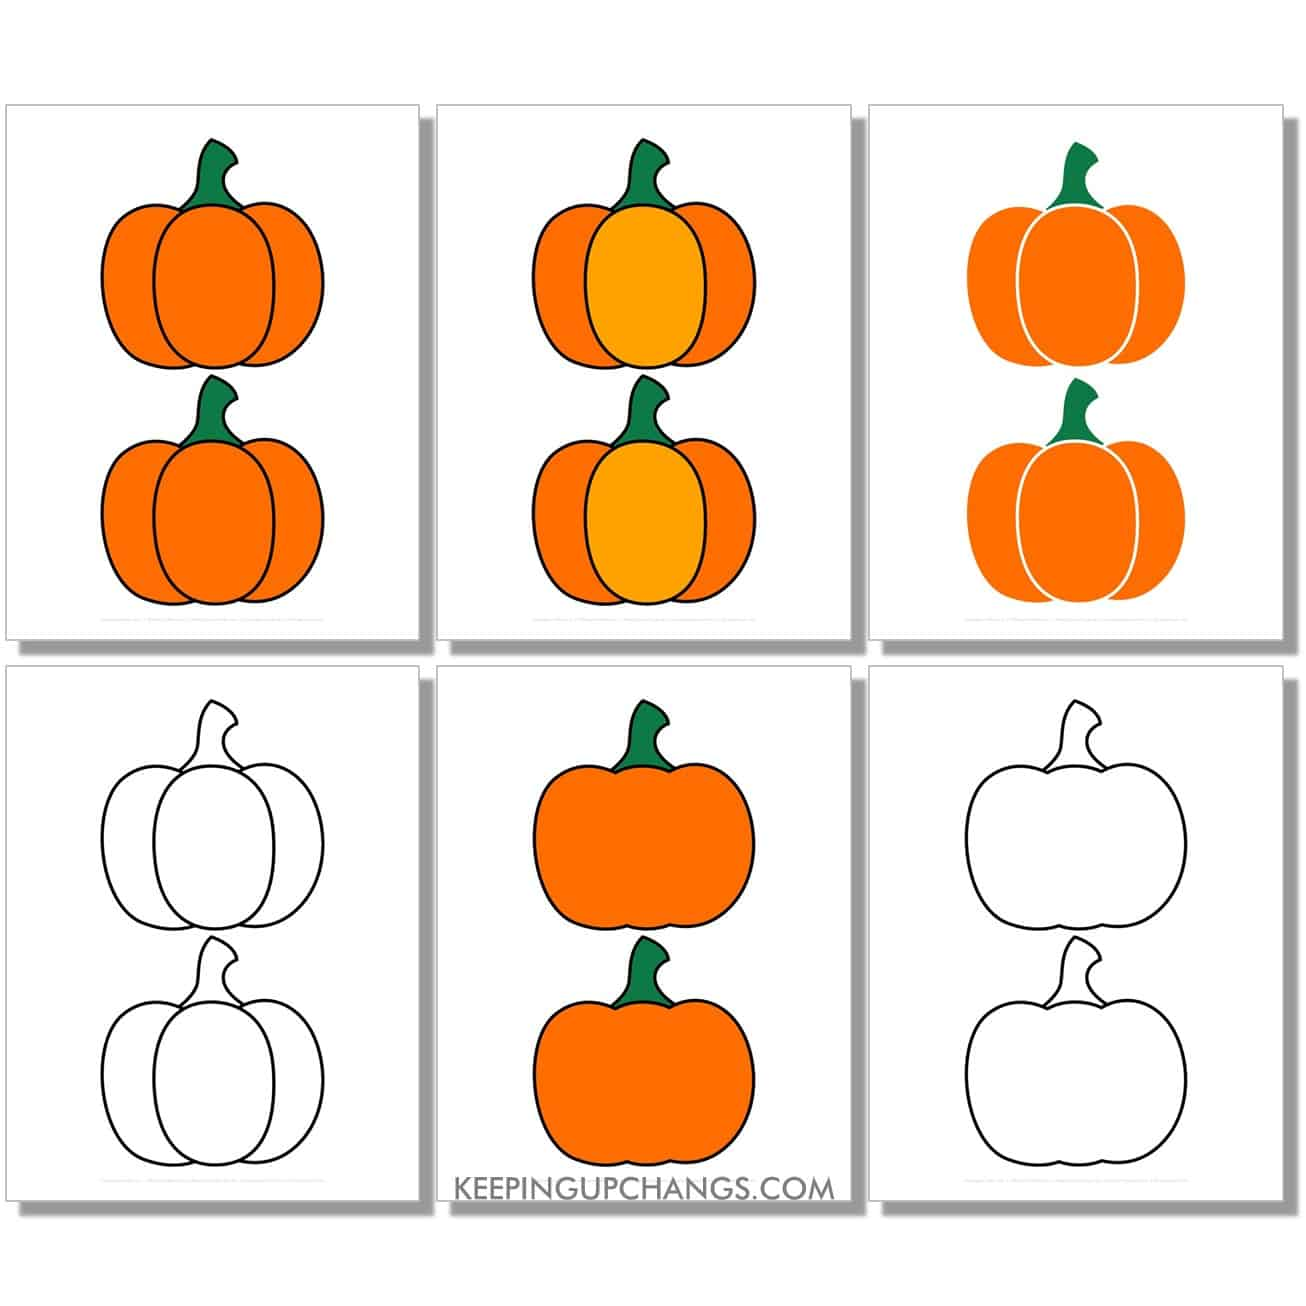 free medium simple pumpkin in color, black and white, silhouette, 2 to a page.